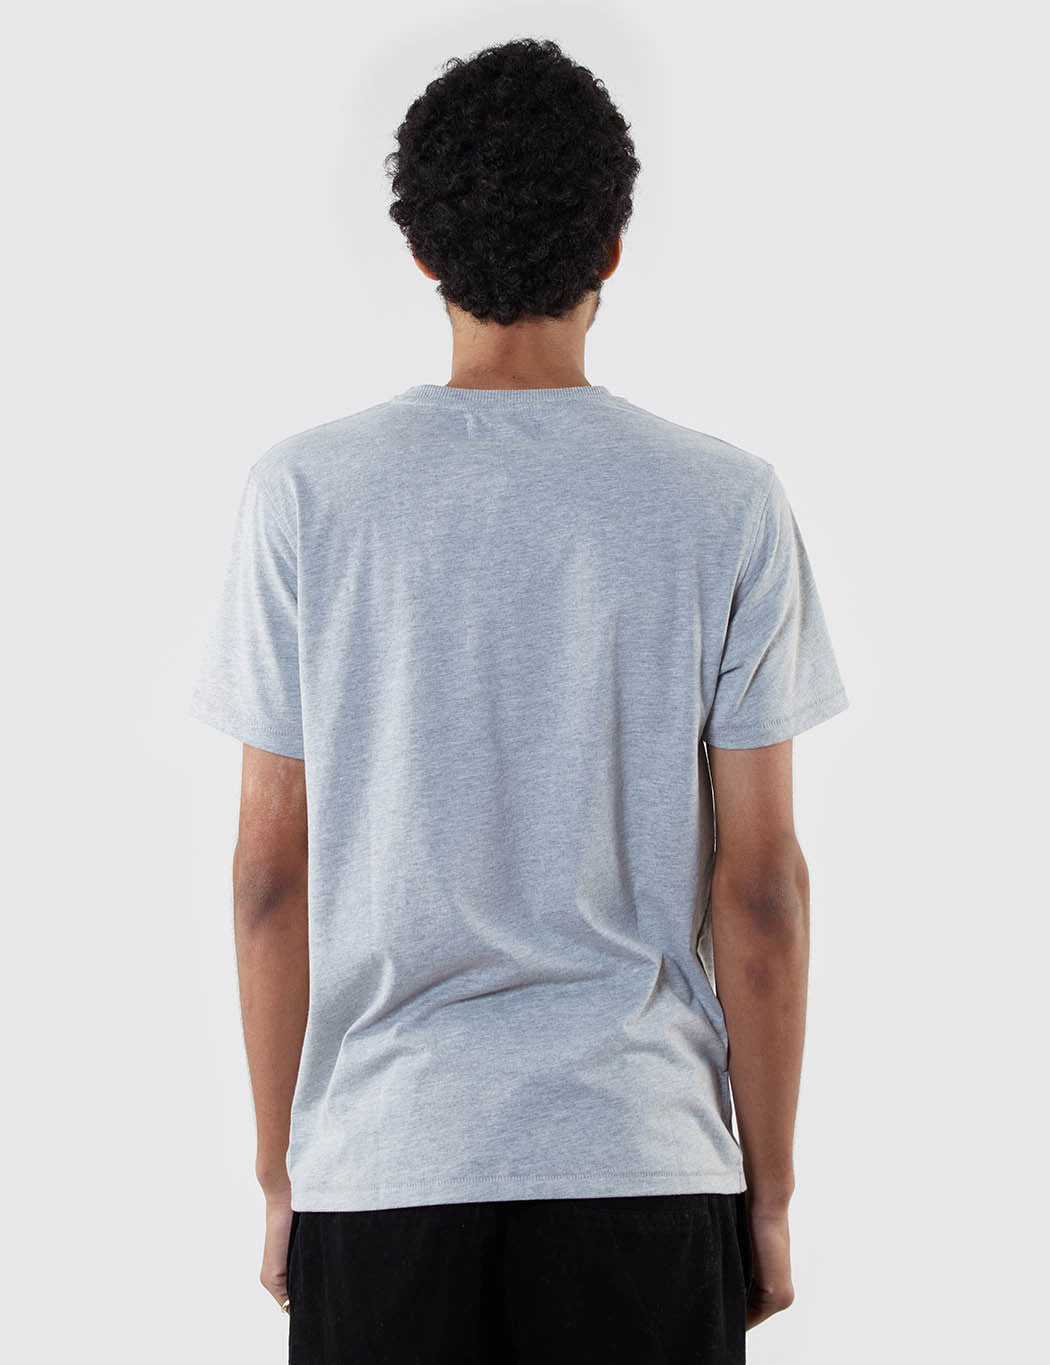 Soulland Whatever T-Shirt - Grey Melange